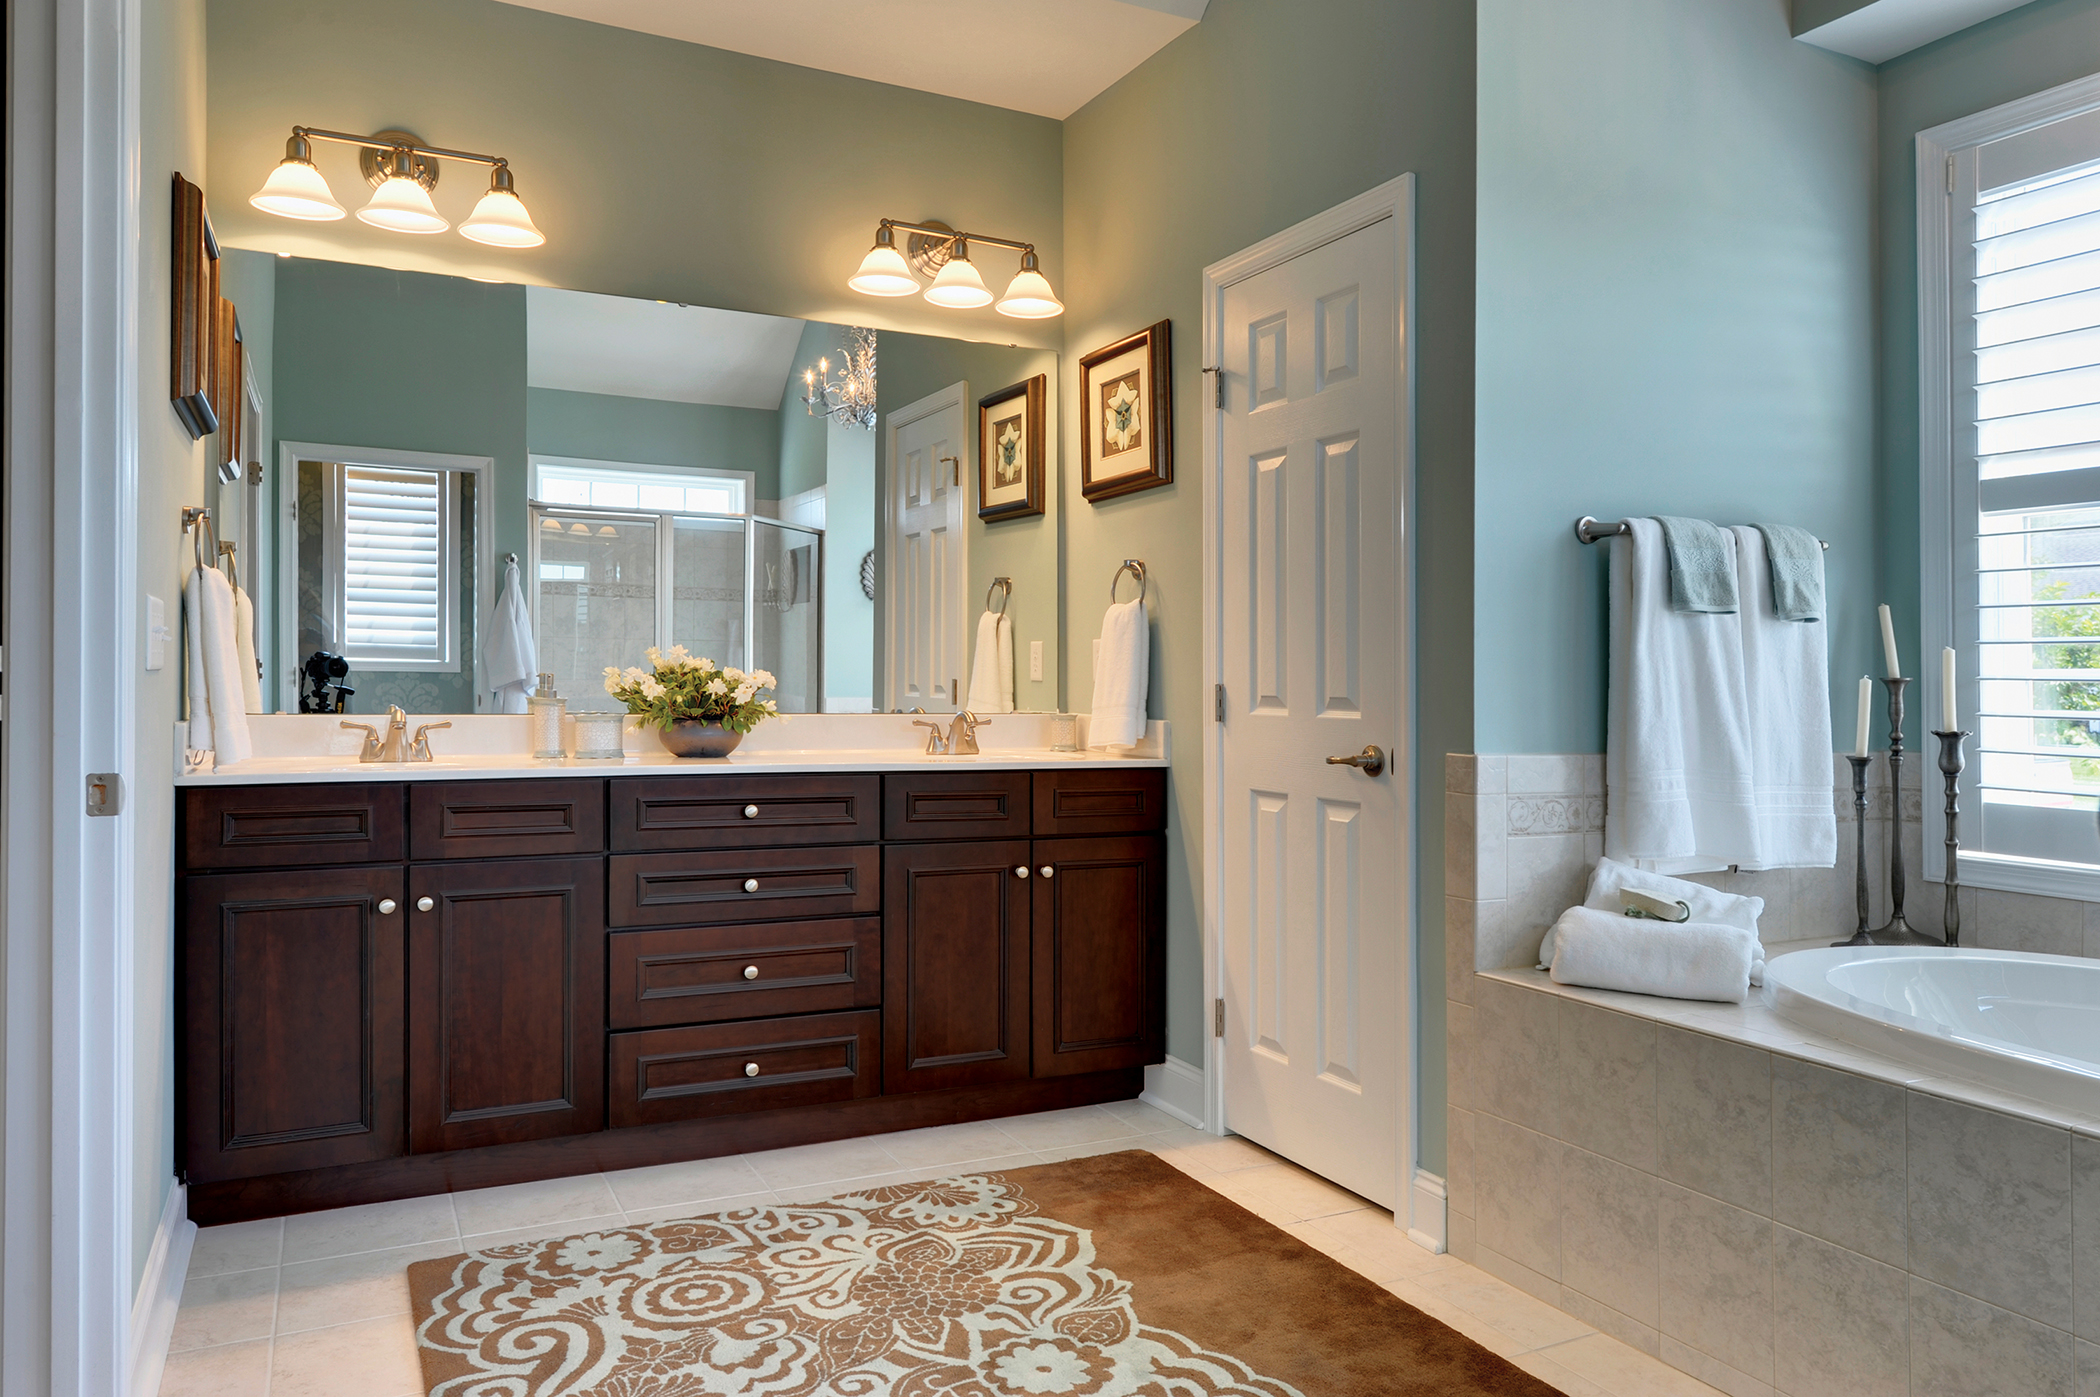 6 Things You Need To Replace In Order To Renovate Your Bathroom